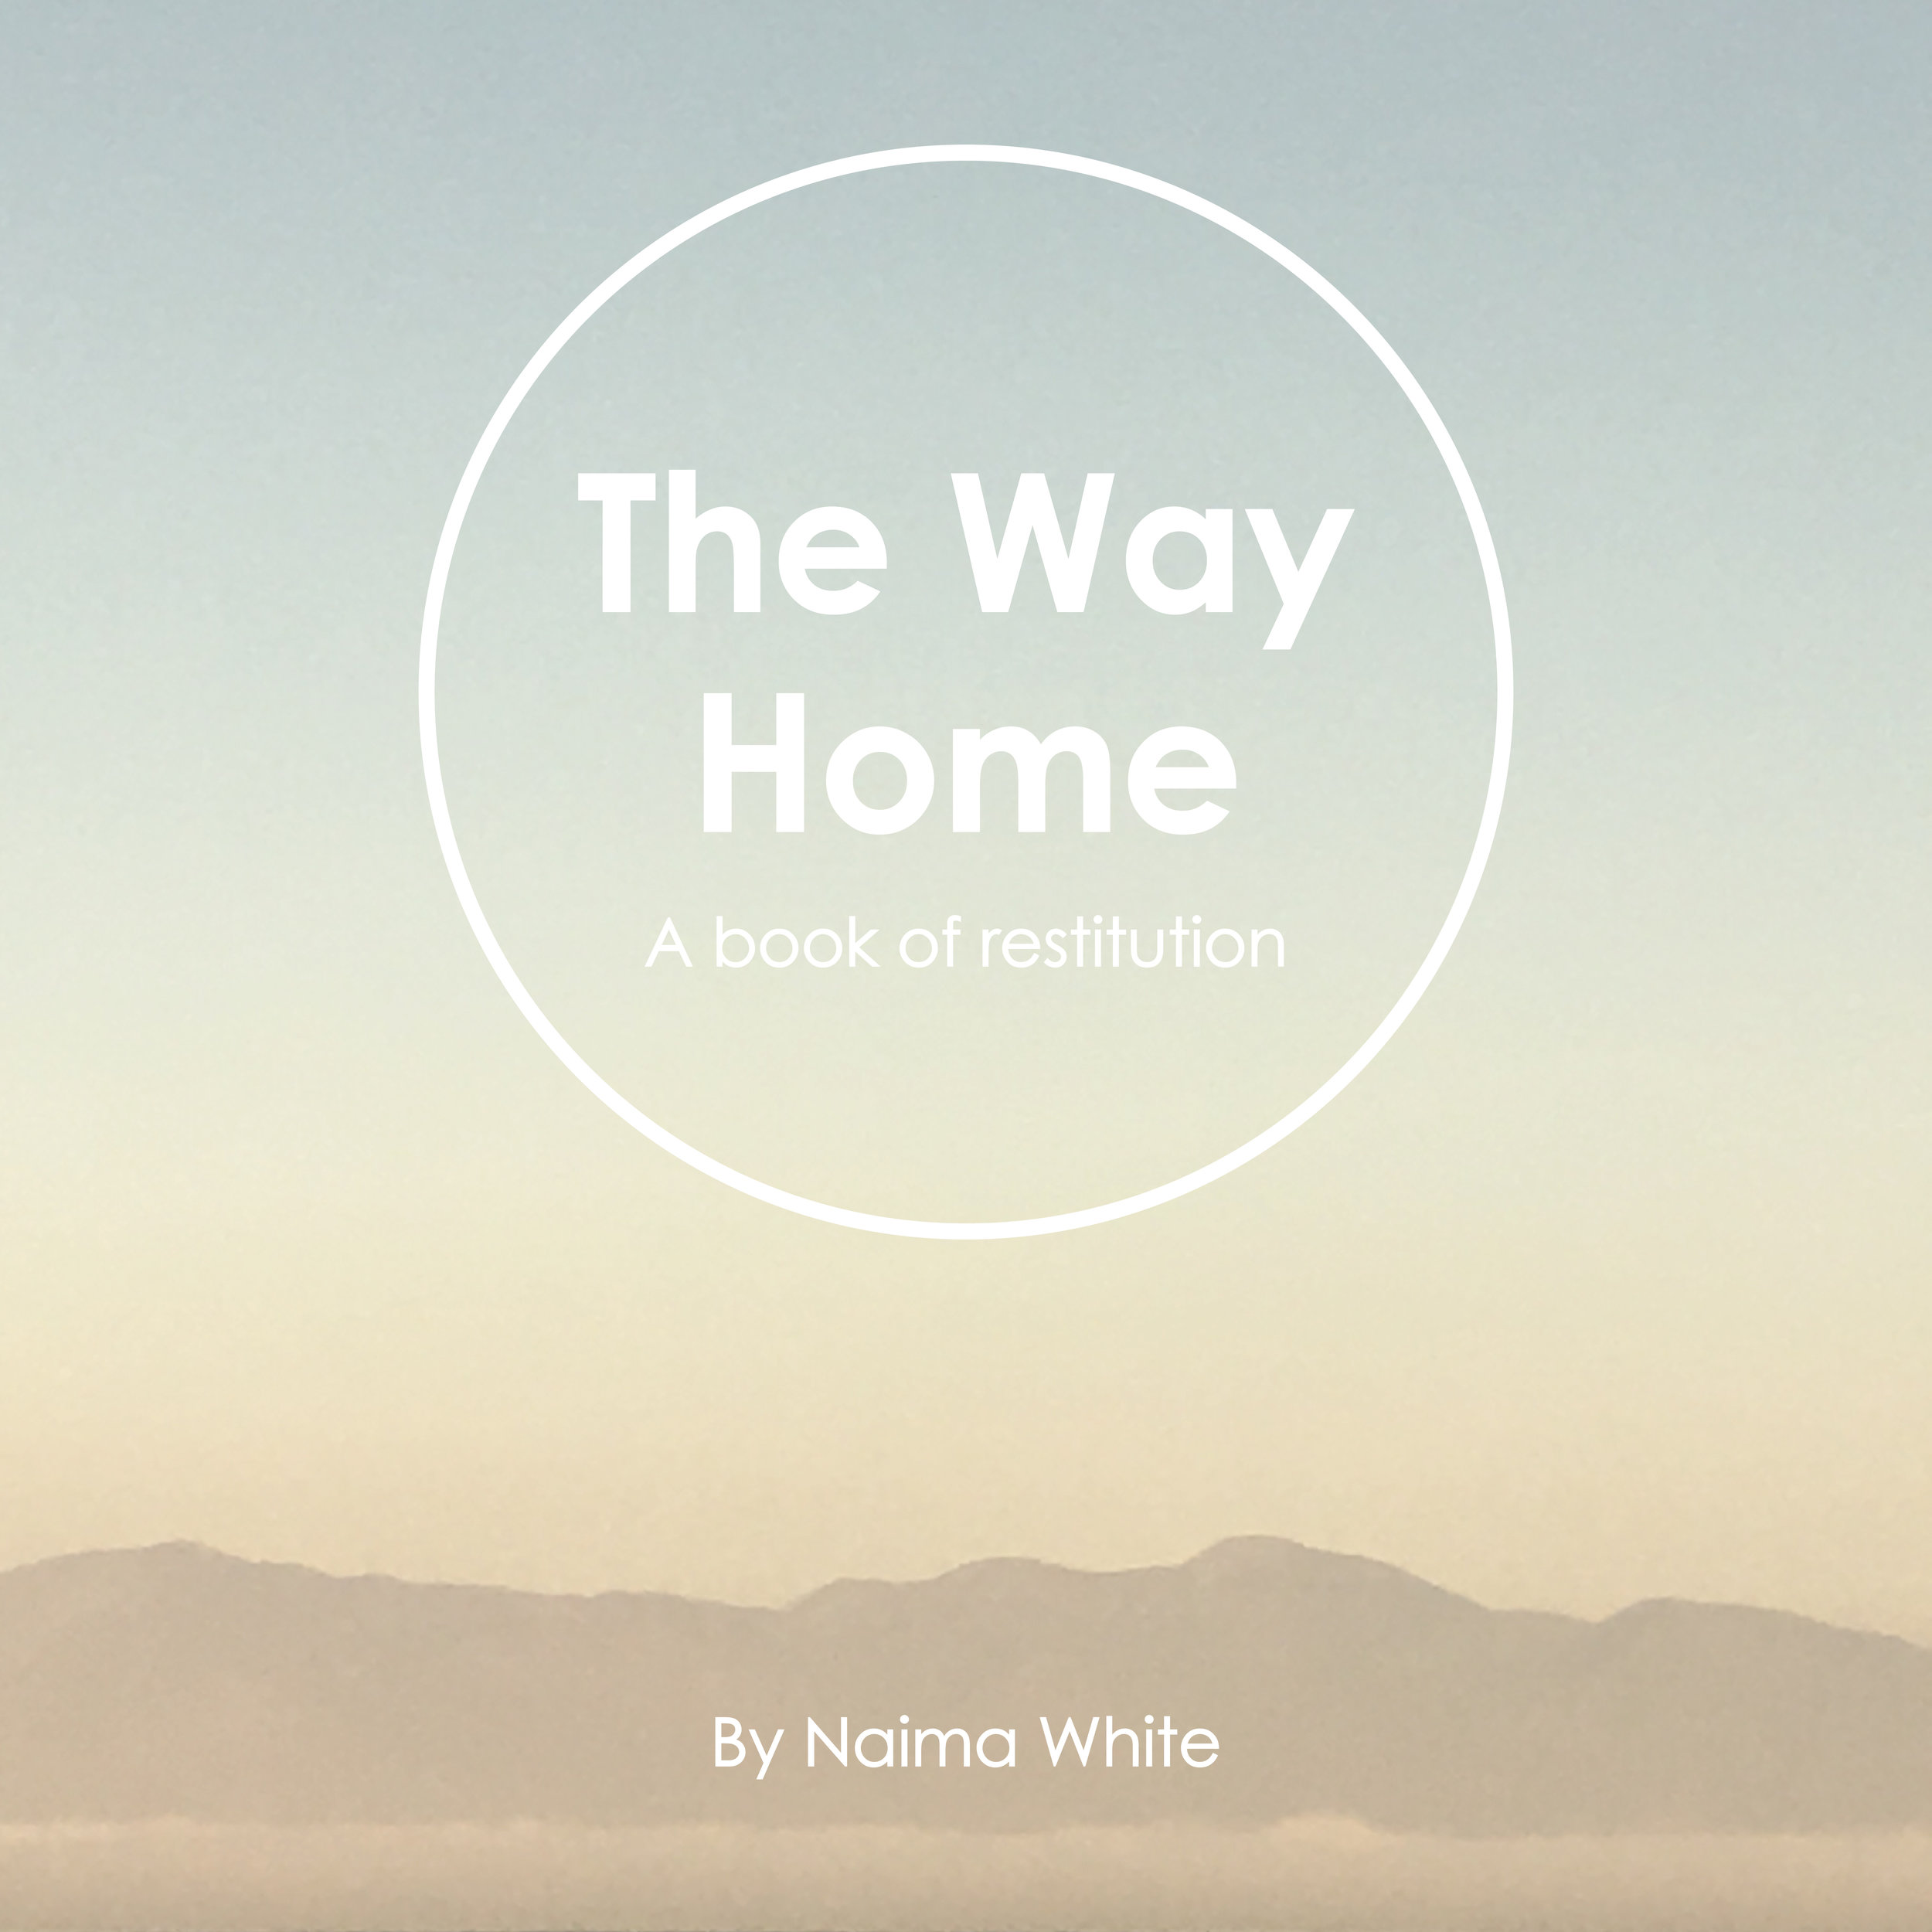 The way home title 2-01.jpg